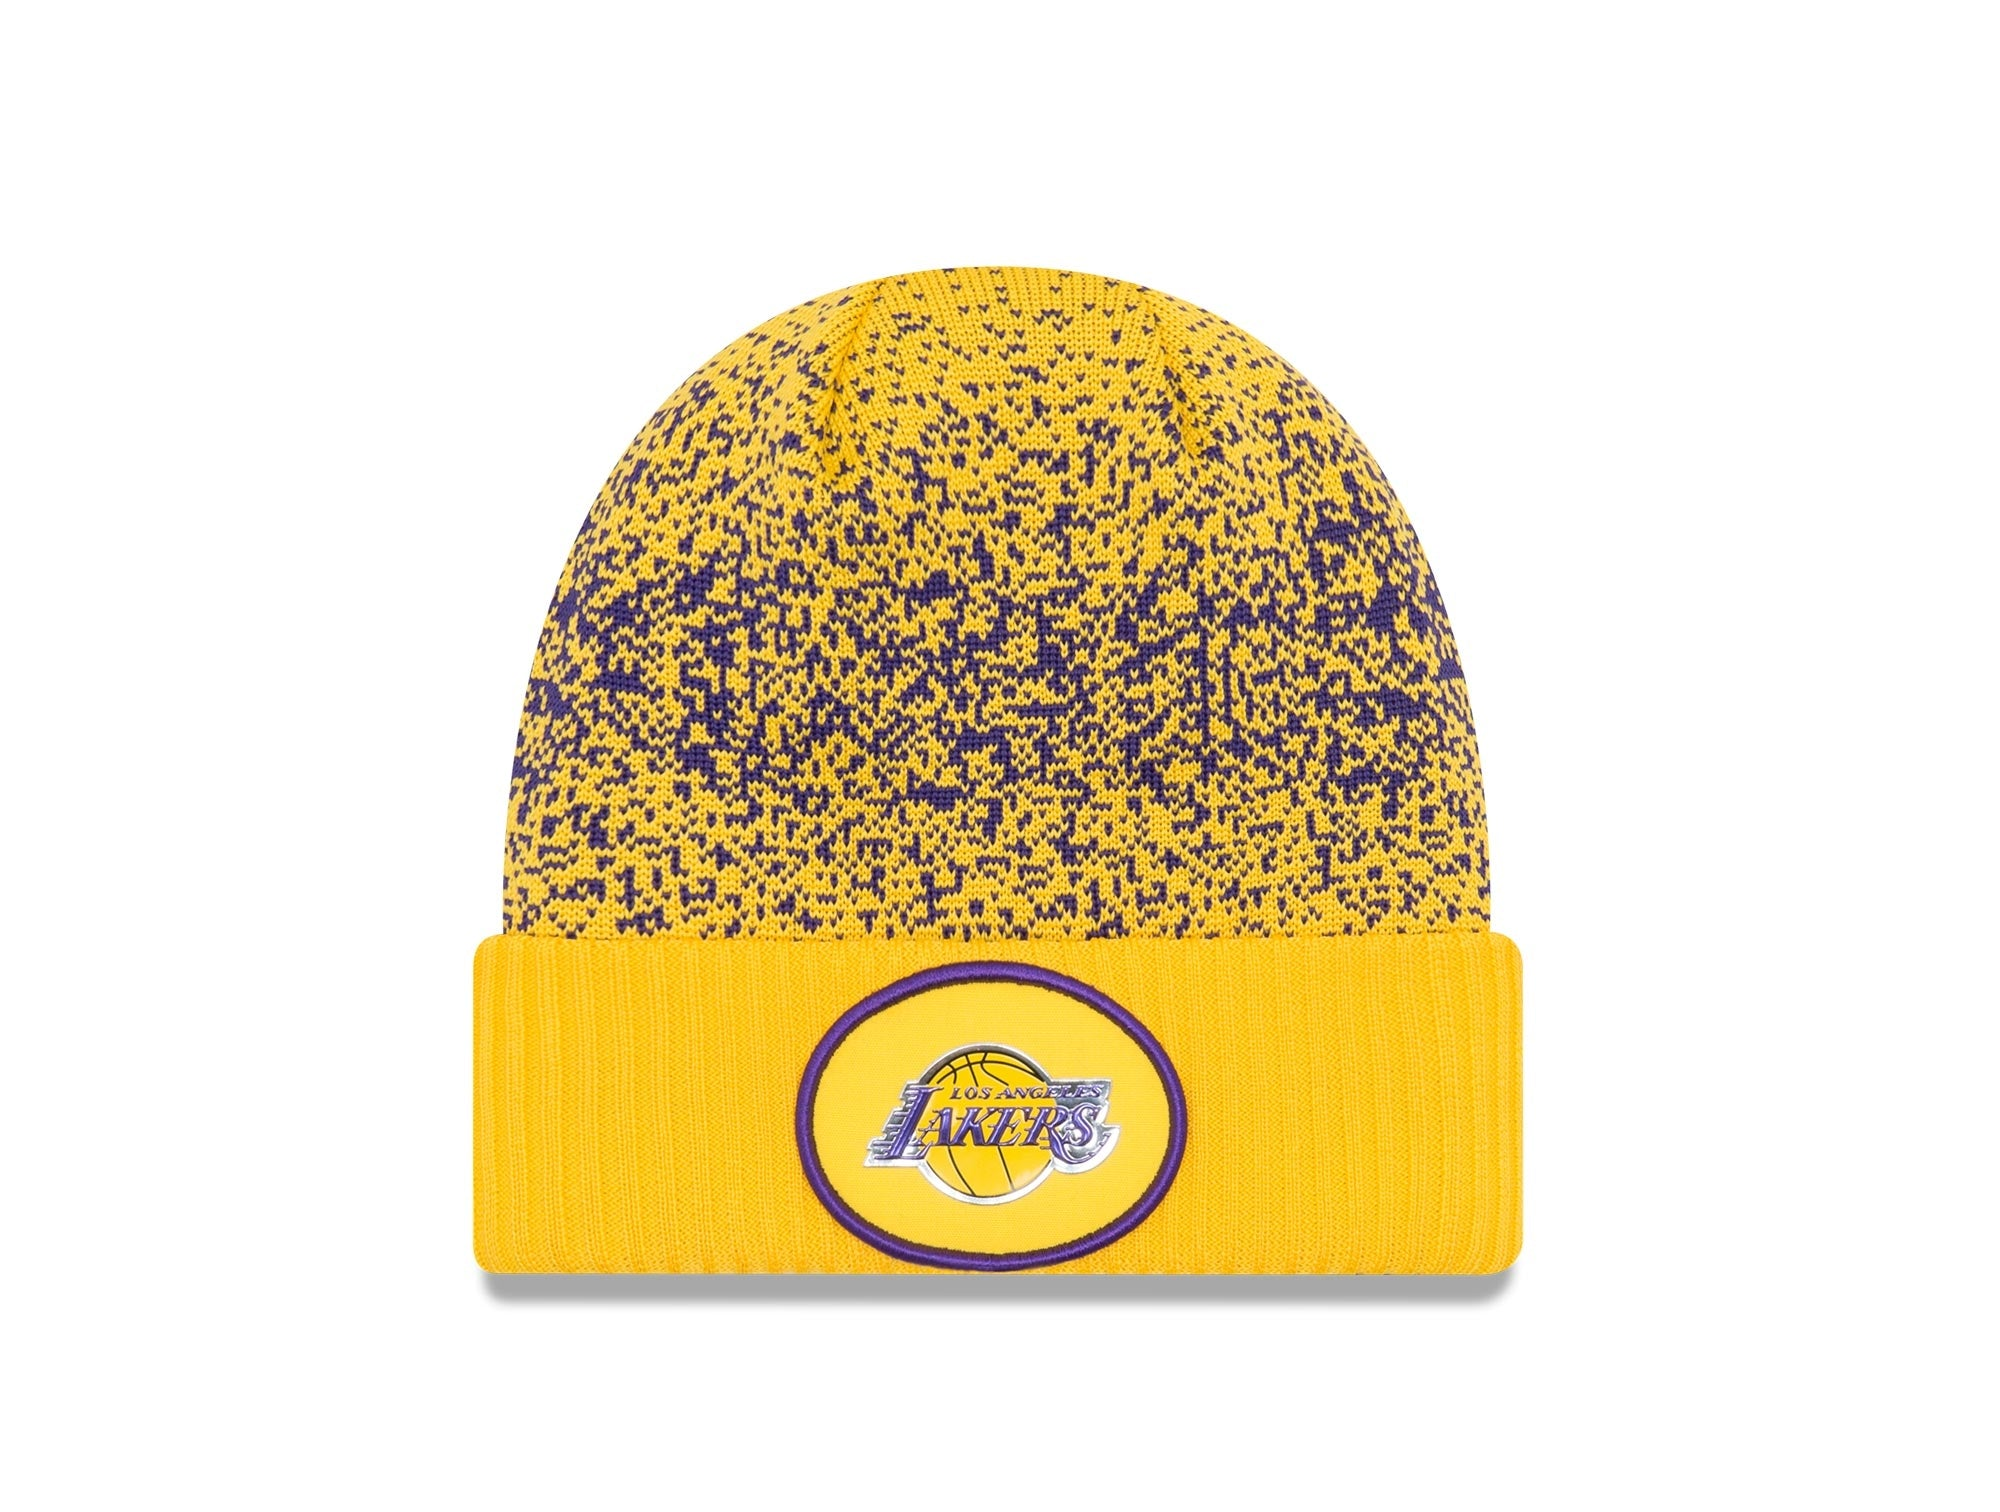 Beanie New Era Jr Nba17 Onc Cuff Loslak Unisex